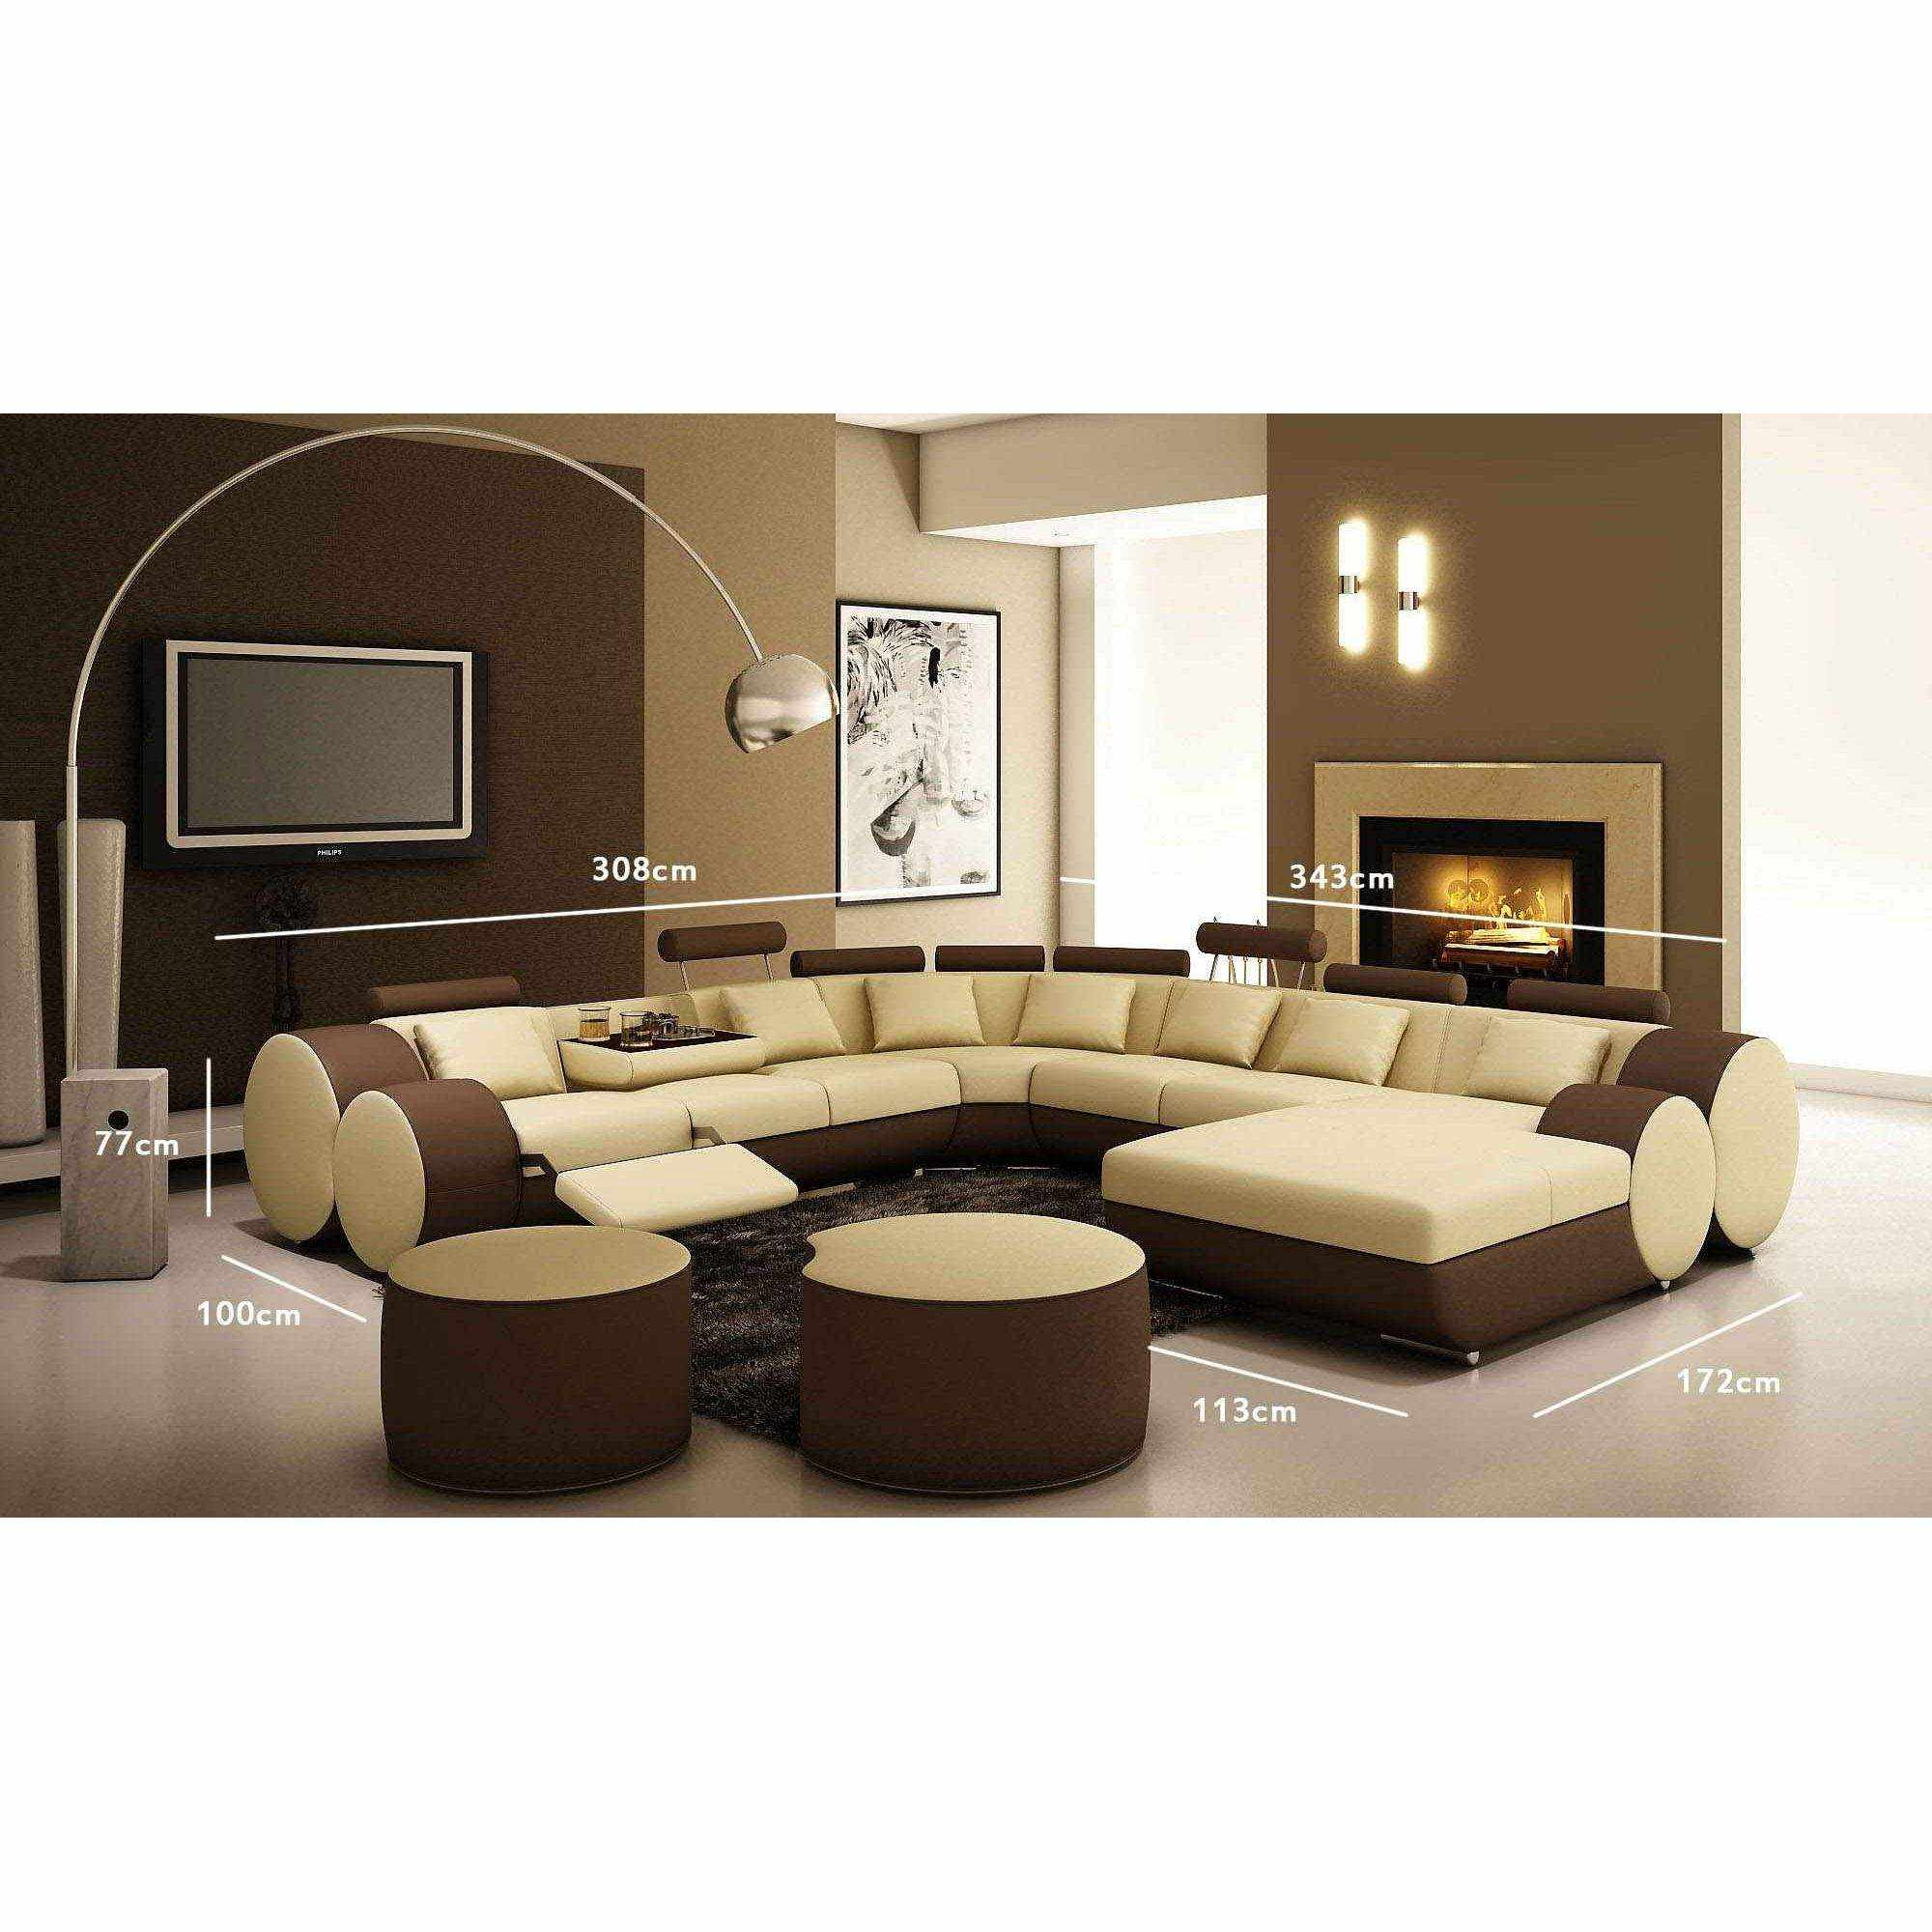 deco in paris canape panoramique cuir beige et marron roma can pan roma beige marron. Black Bedroom Furniture Sets. Home Design Ideas